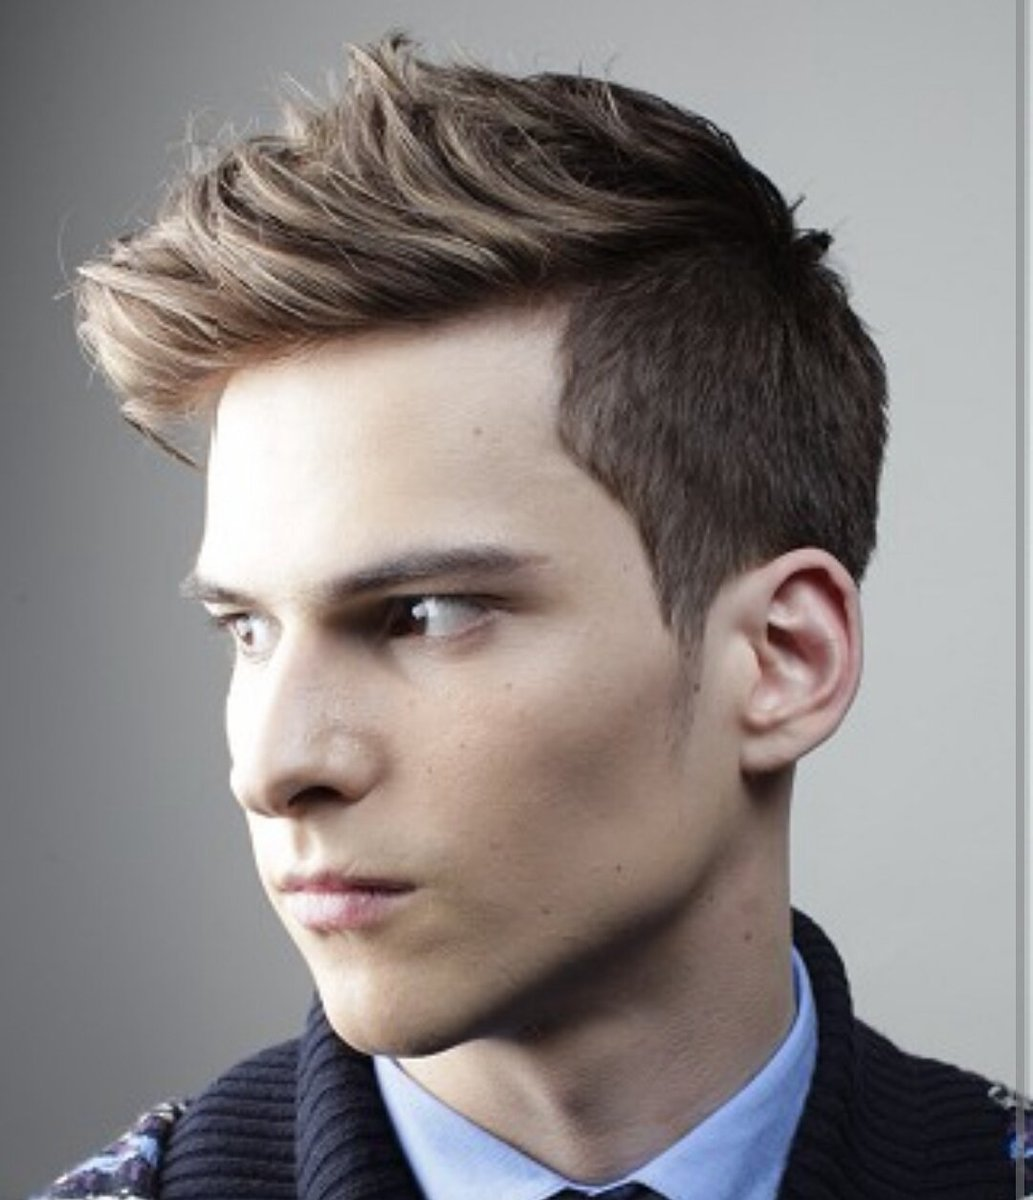 Modern Hairstyles: Top 40 New Modern Hairstyles For Men's